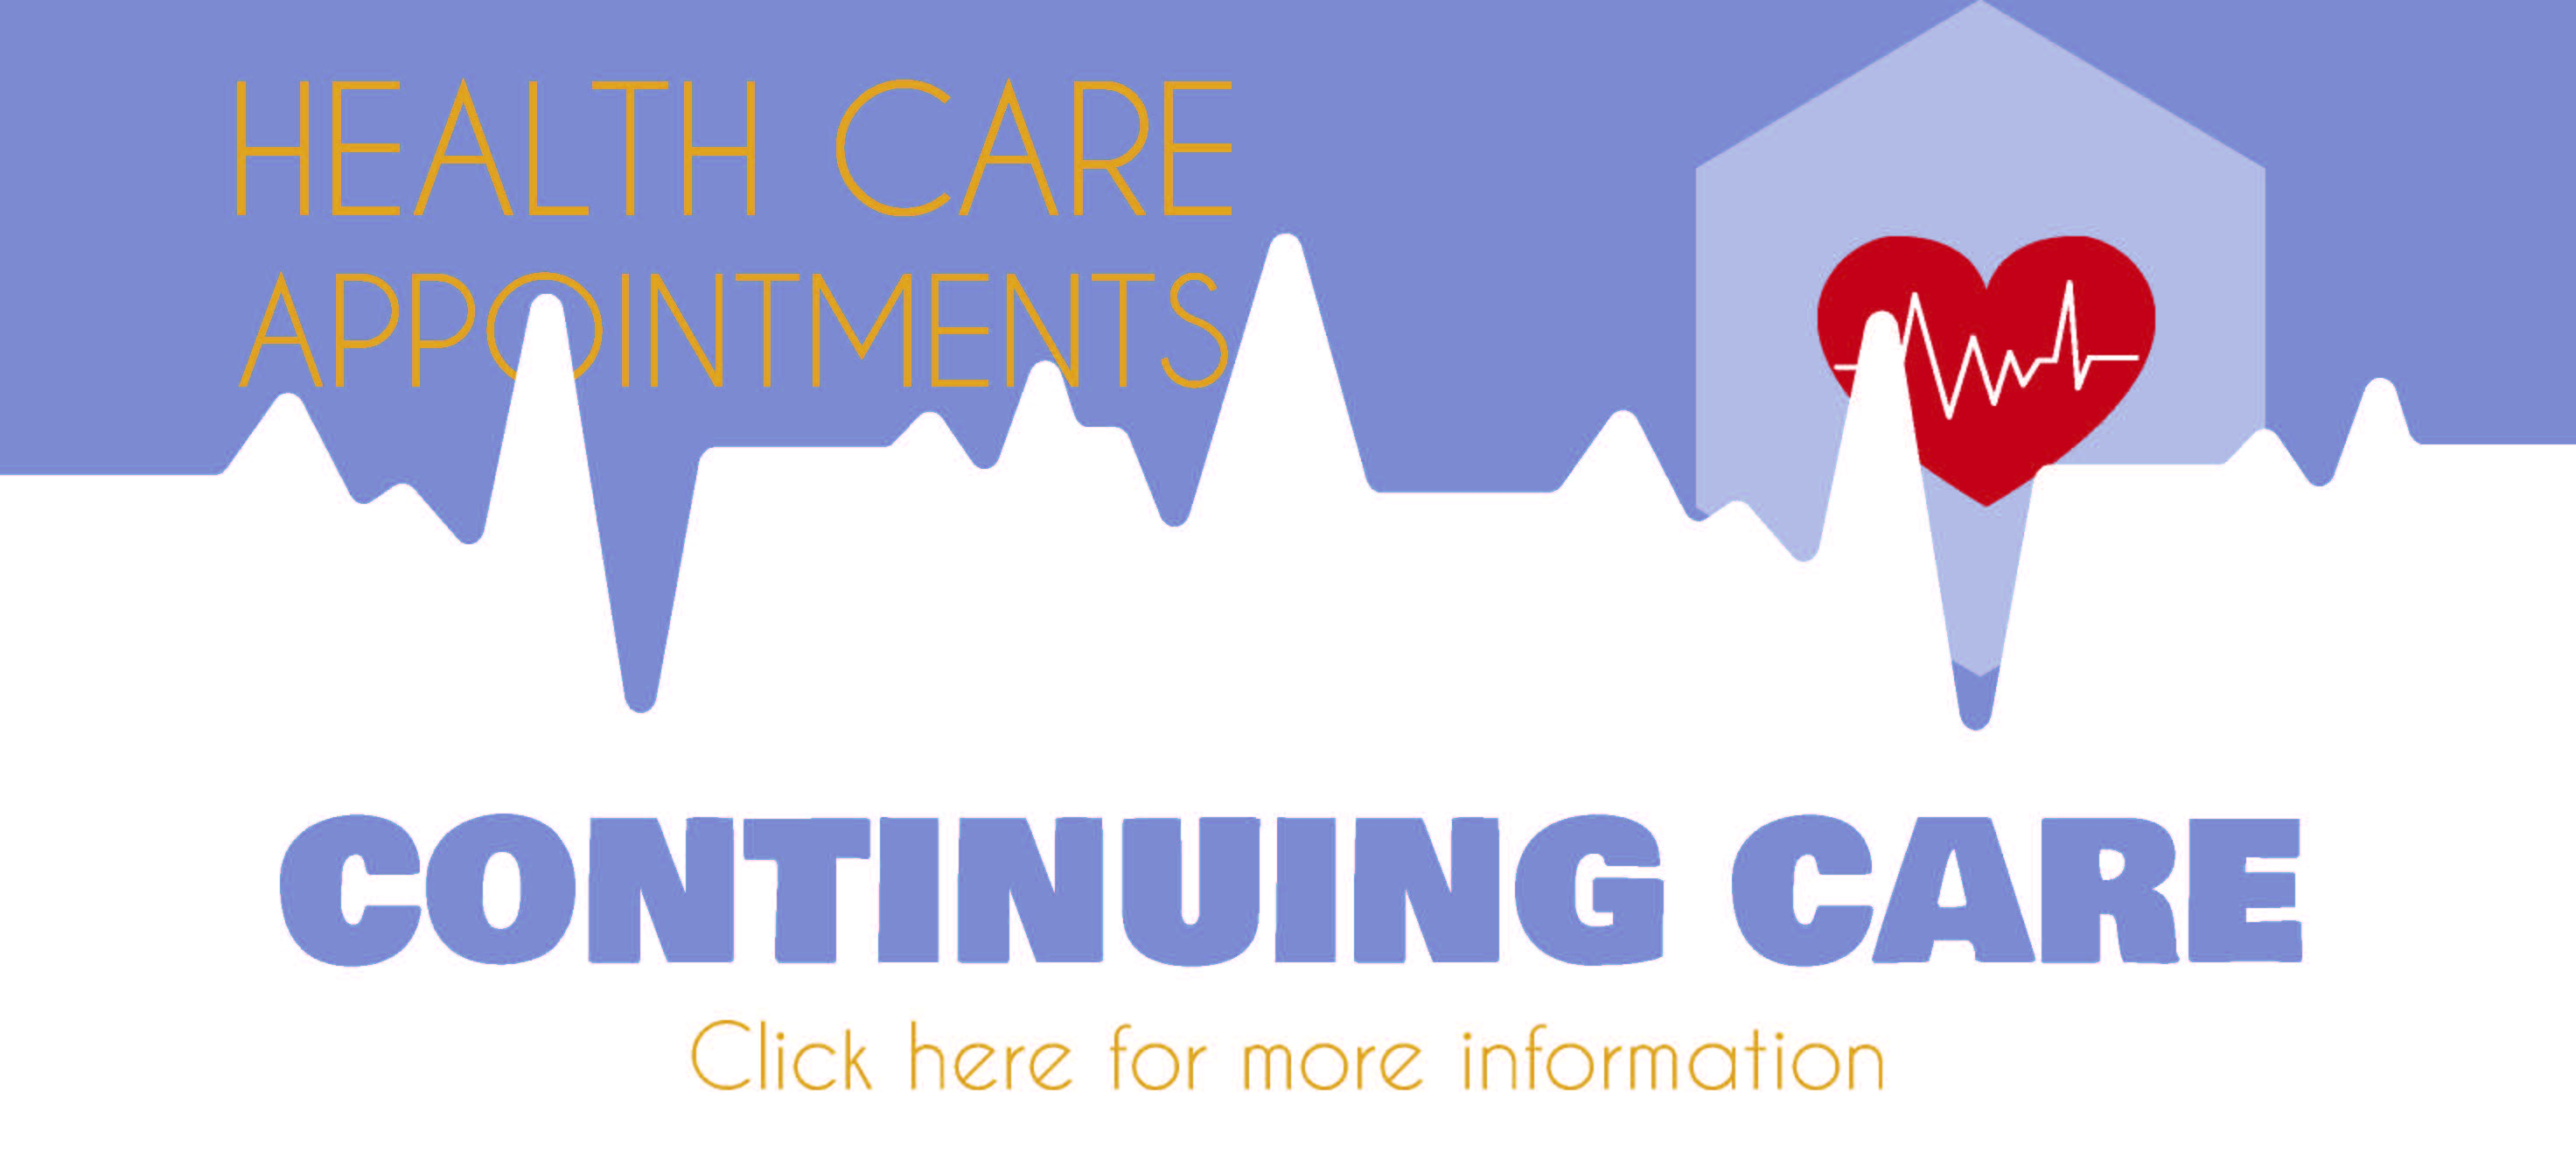 Continuing care image with heart